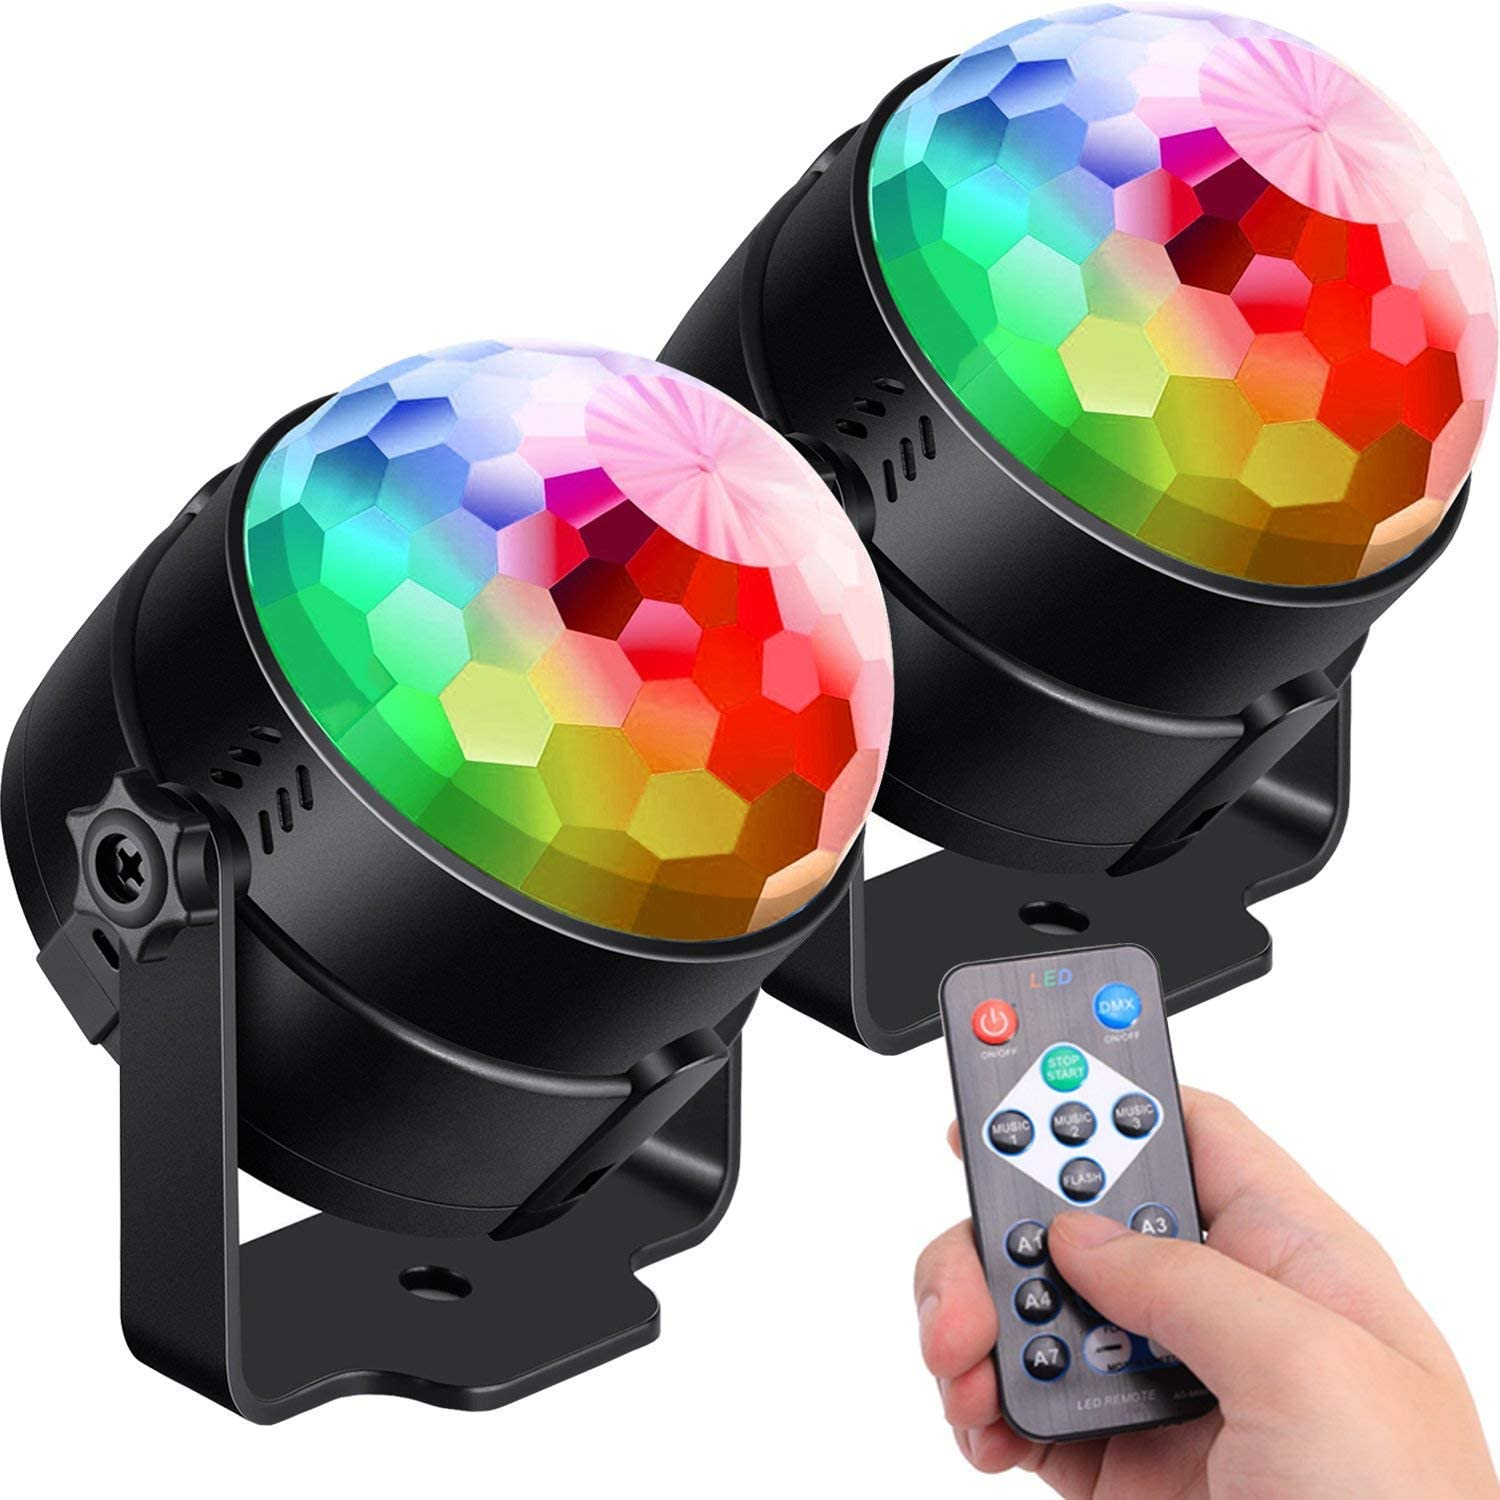 [2-Pack] Sound Activated Party Lights with Remote Control Dj Lighting, RBG Disco Ball Light, Strobe Lamp 7 Modes Stage Par Light for Home Room Dance Parties Bar Karaoke Xmas Wedding Show Club (2 PCS)